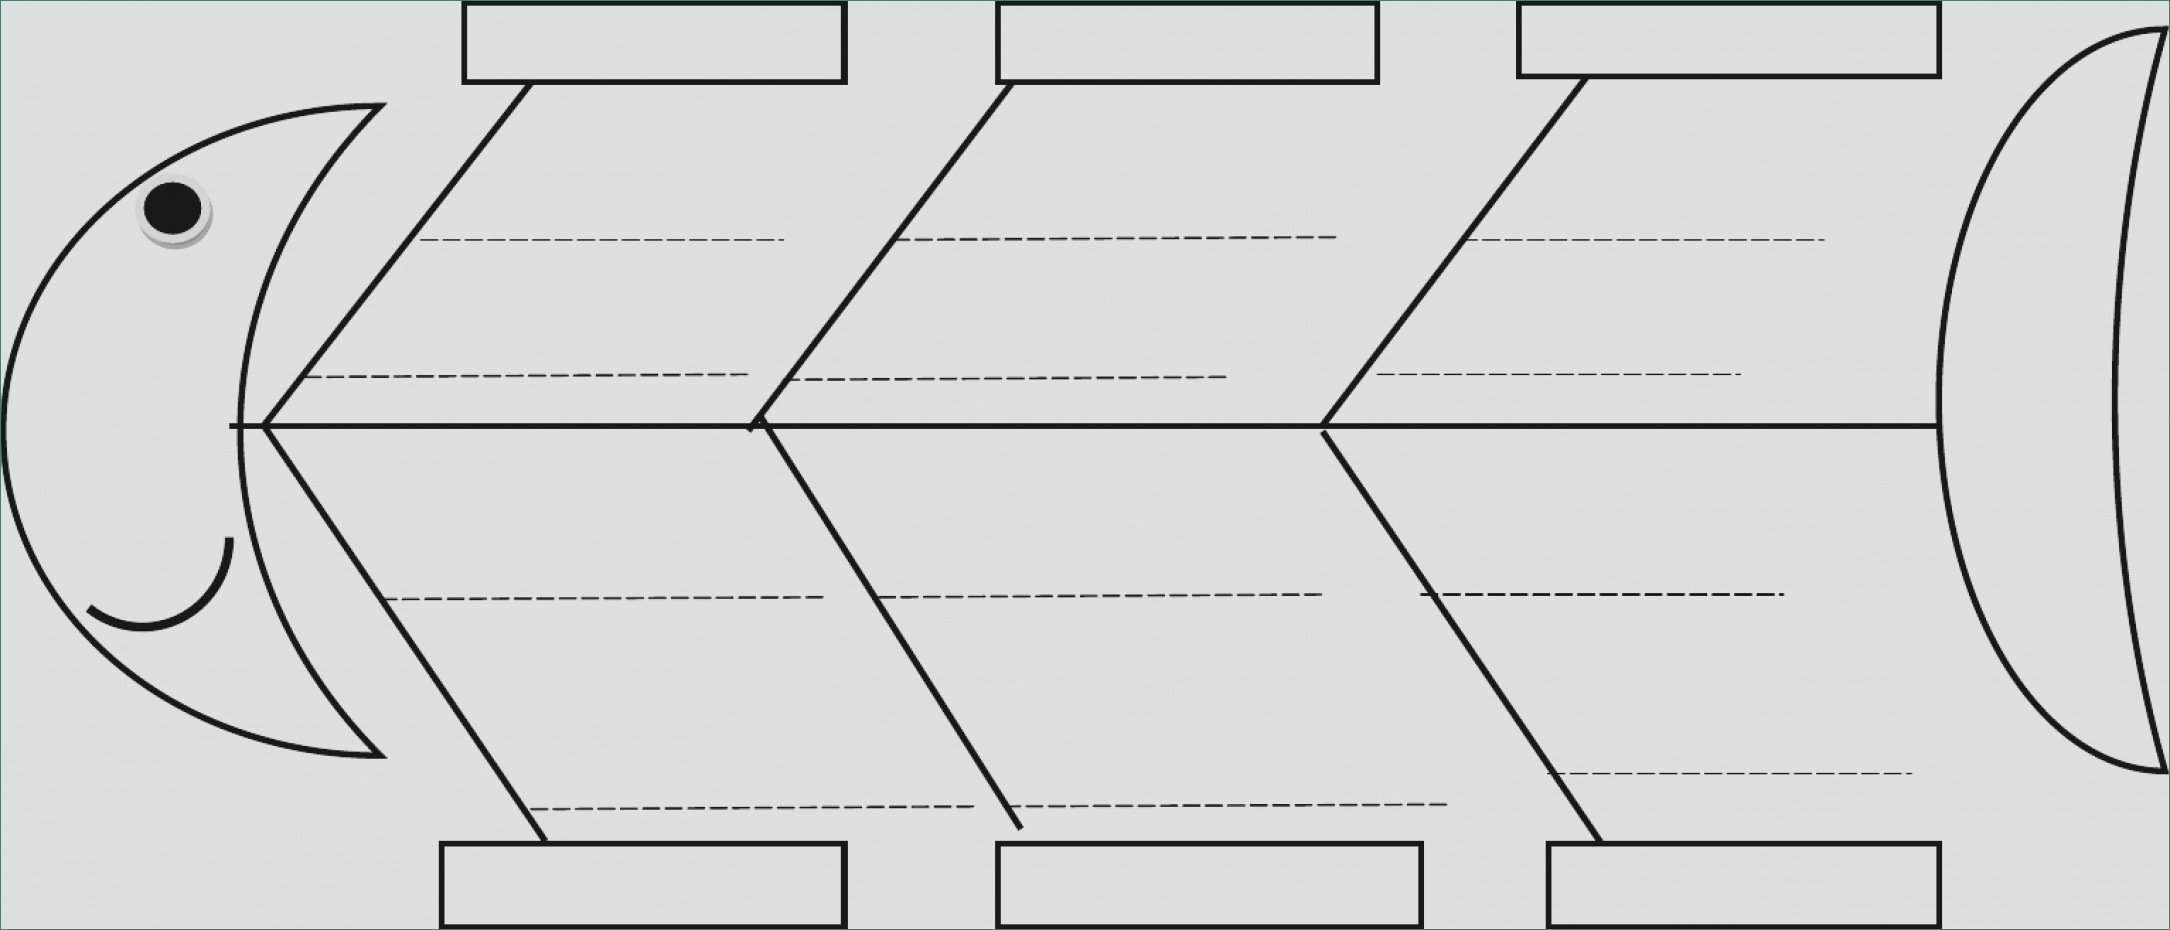 Blank Fishbone Diagram Template Blank Cause and Effect Diagram